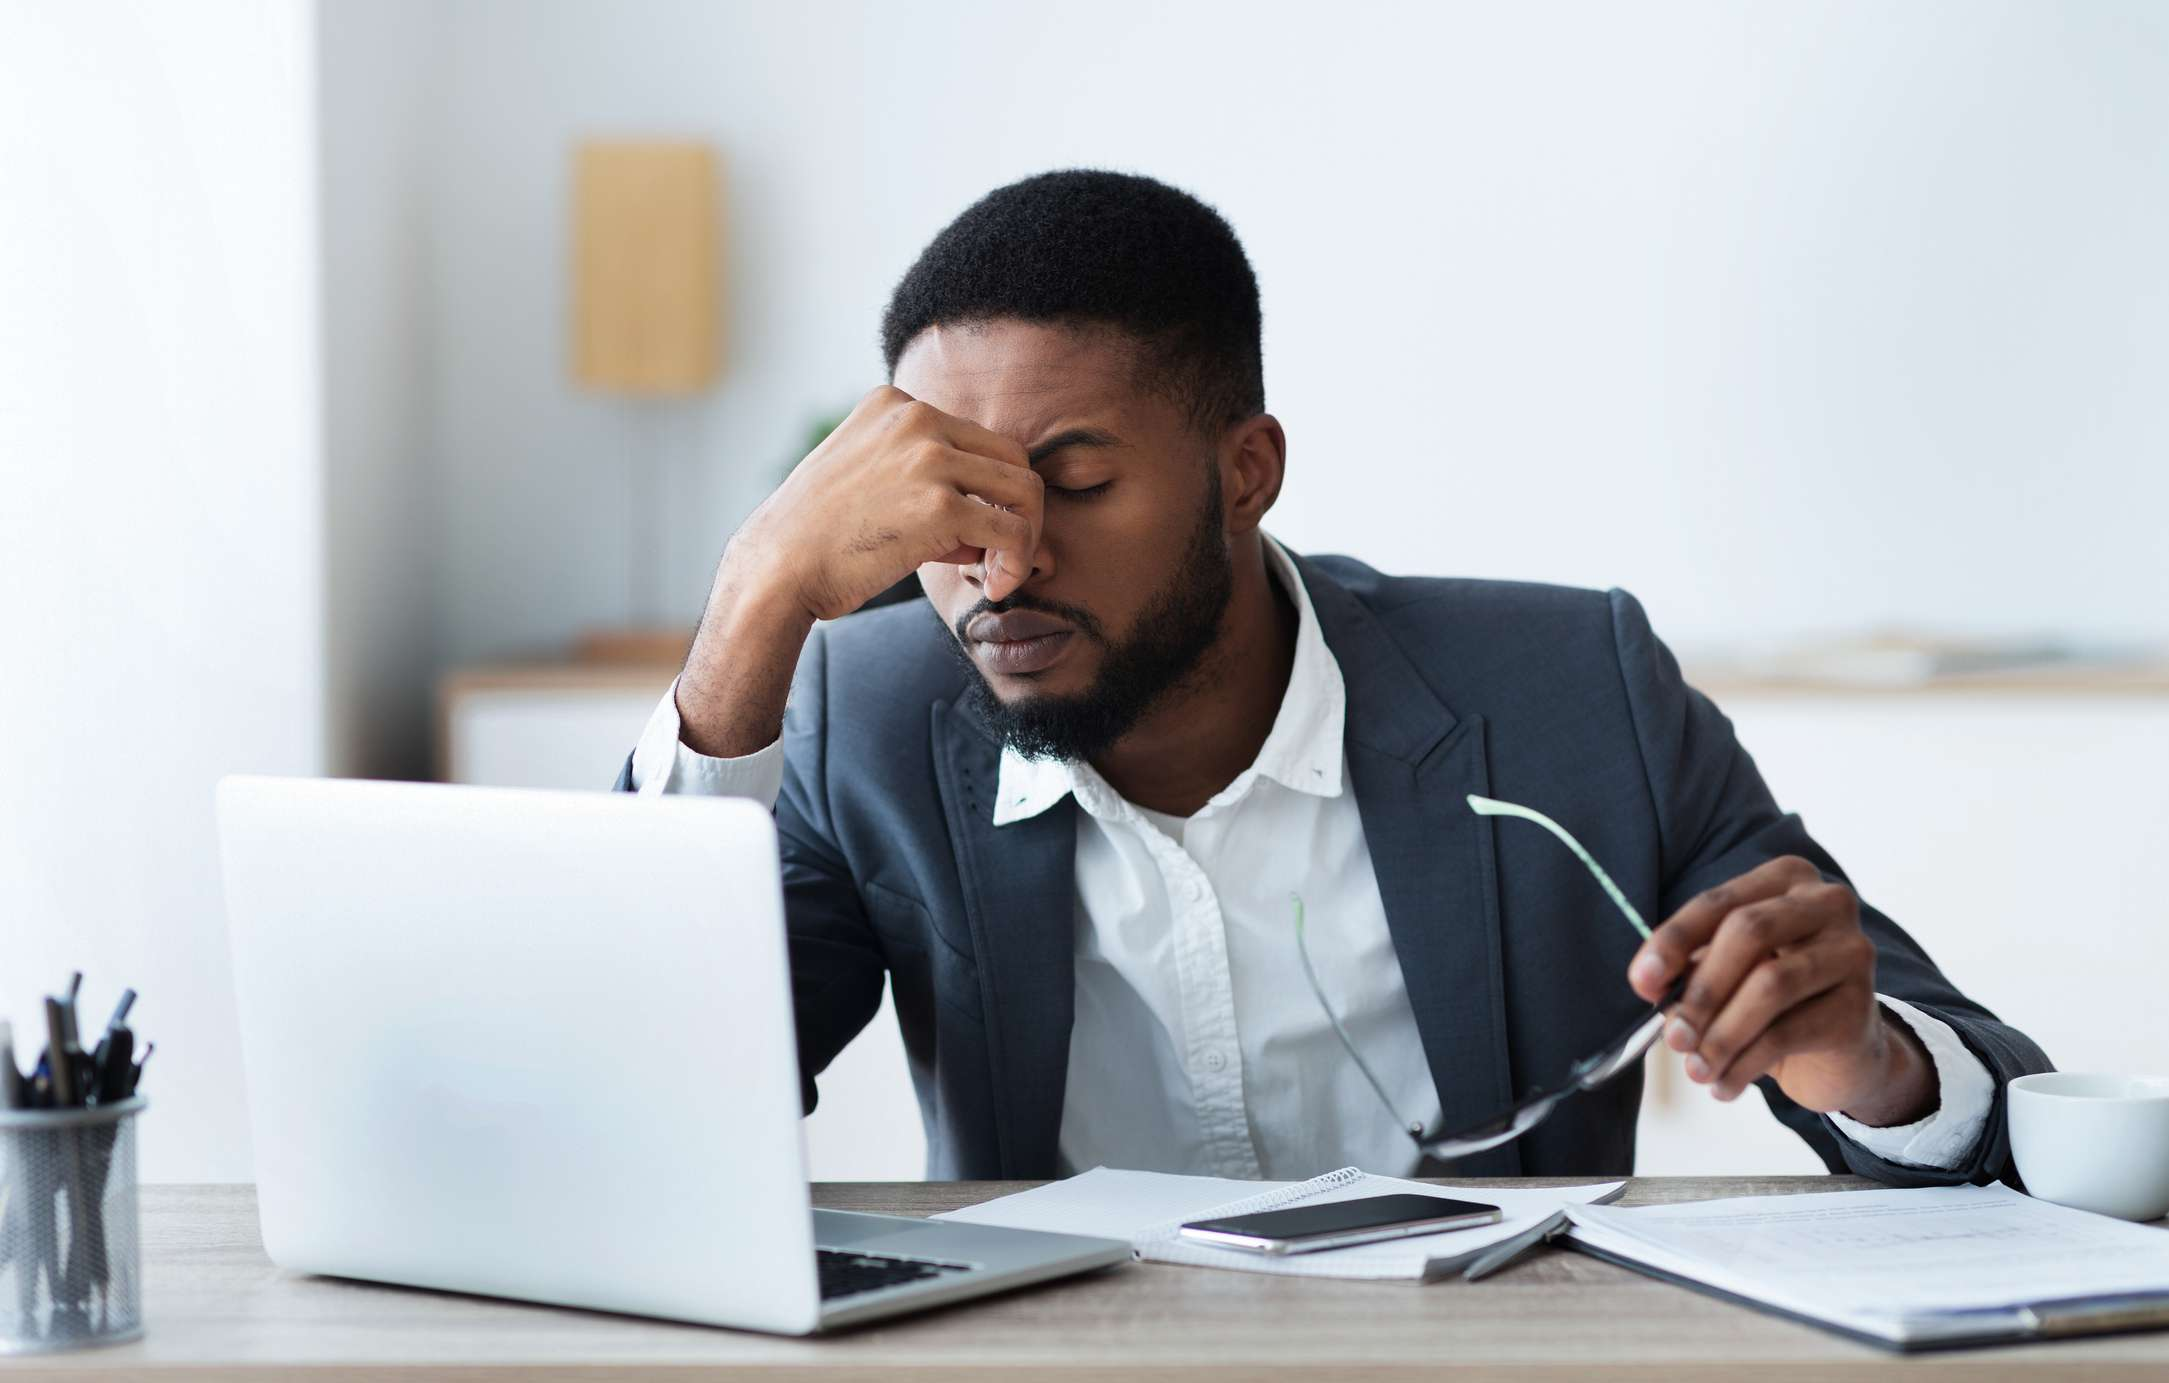 Man with a computer and phone holding glasses and experiencing eye strain.